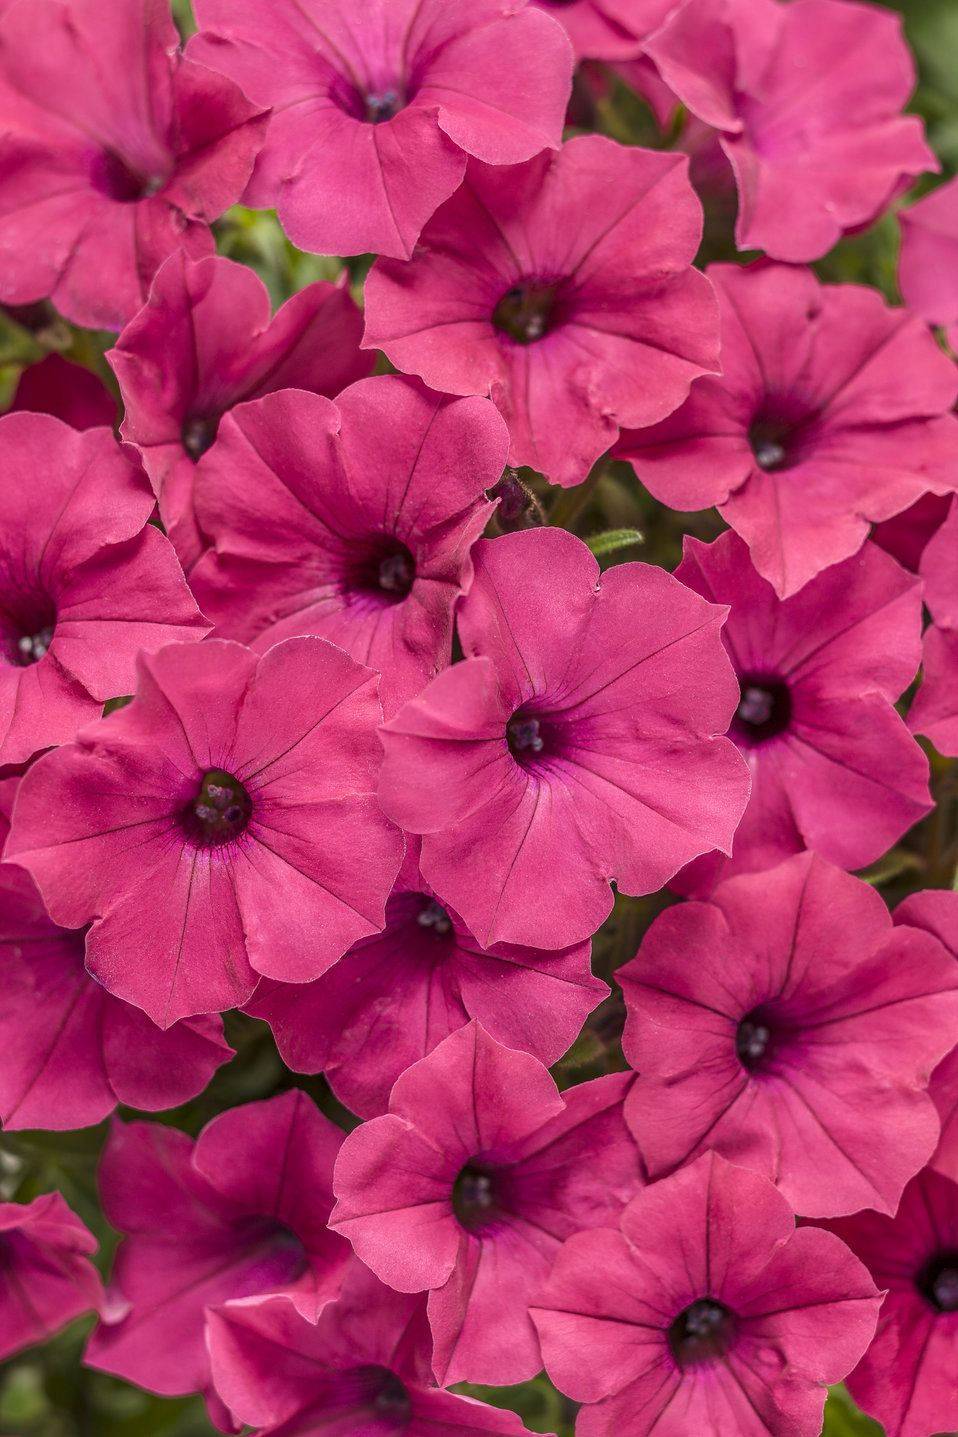 Supertunia Vista Fuchsia Petunia Hybrid Petunias Flowers Perennials Beautiful Flowers